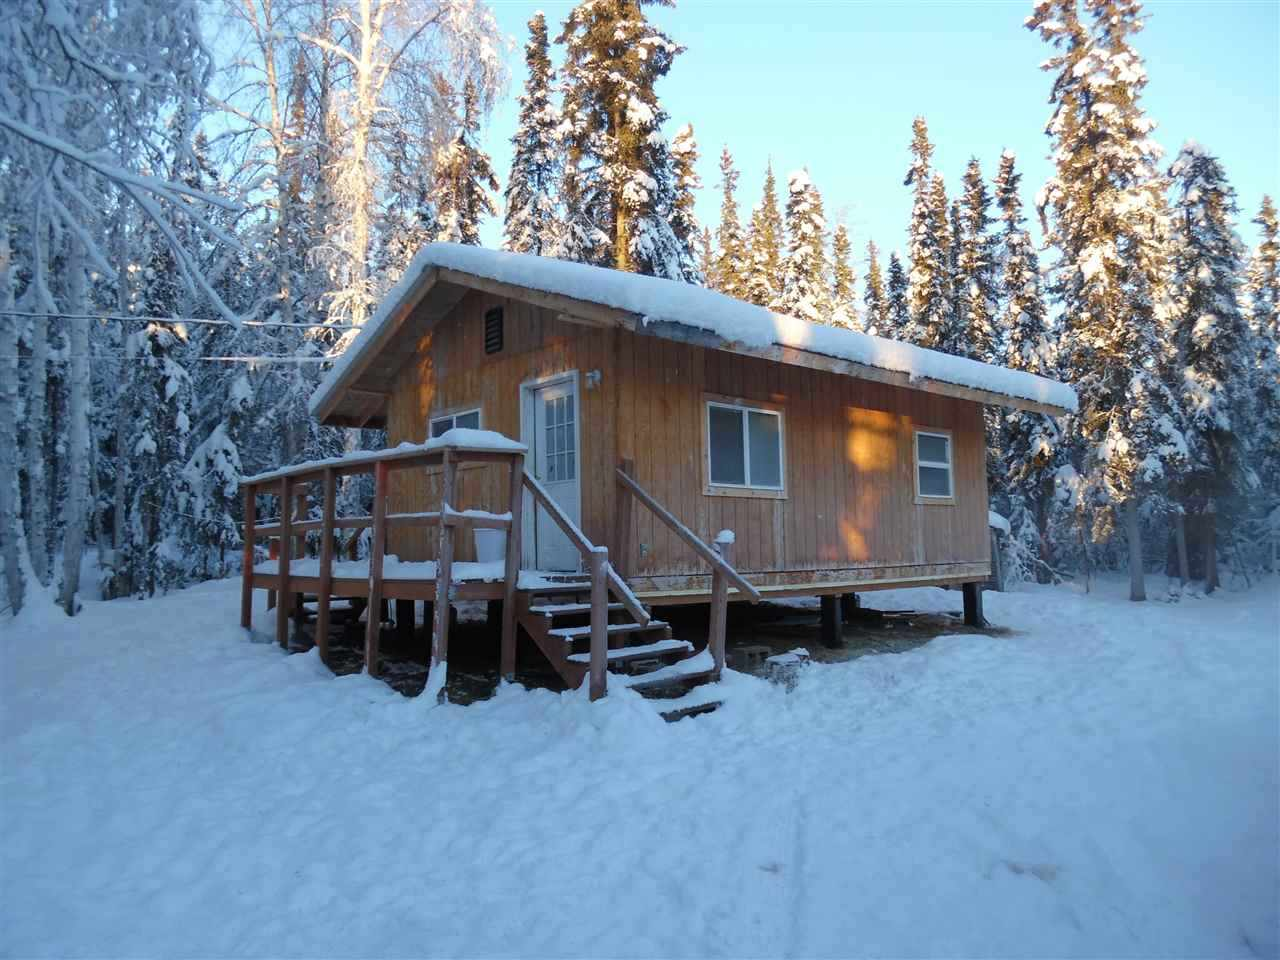 2291 Solar Ave, Fairbanks, AK 99709